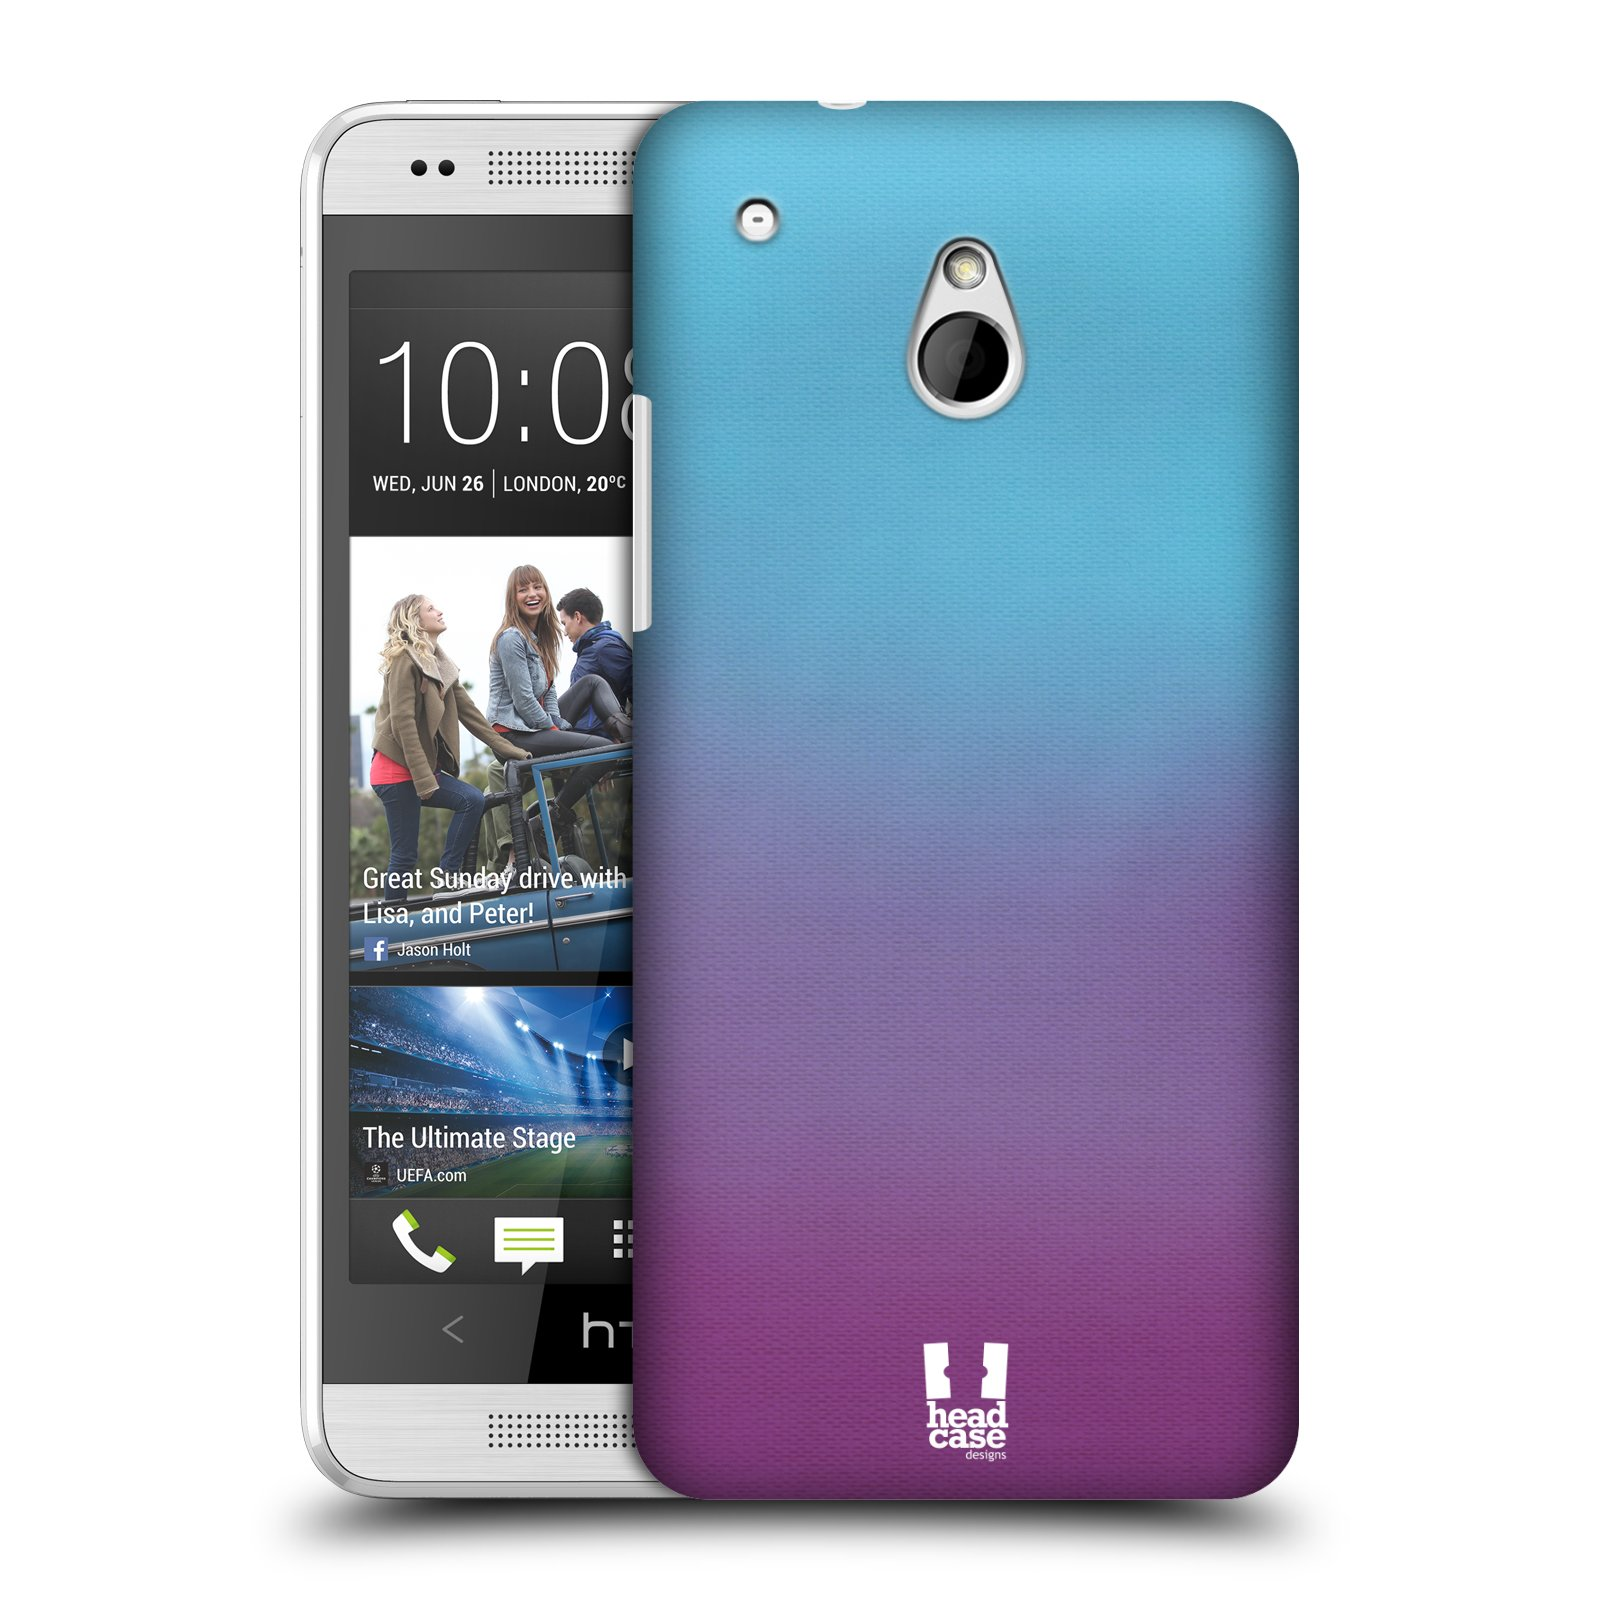 HEAD CASE DESIGNS OMBRE PROTECTIVE SNAP-ON HARD BACK CASE COVER FOR HTC ONE MINI